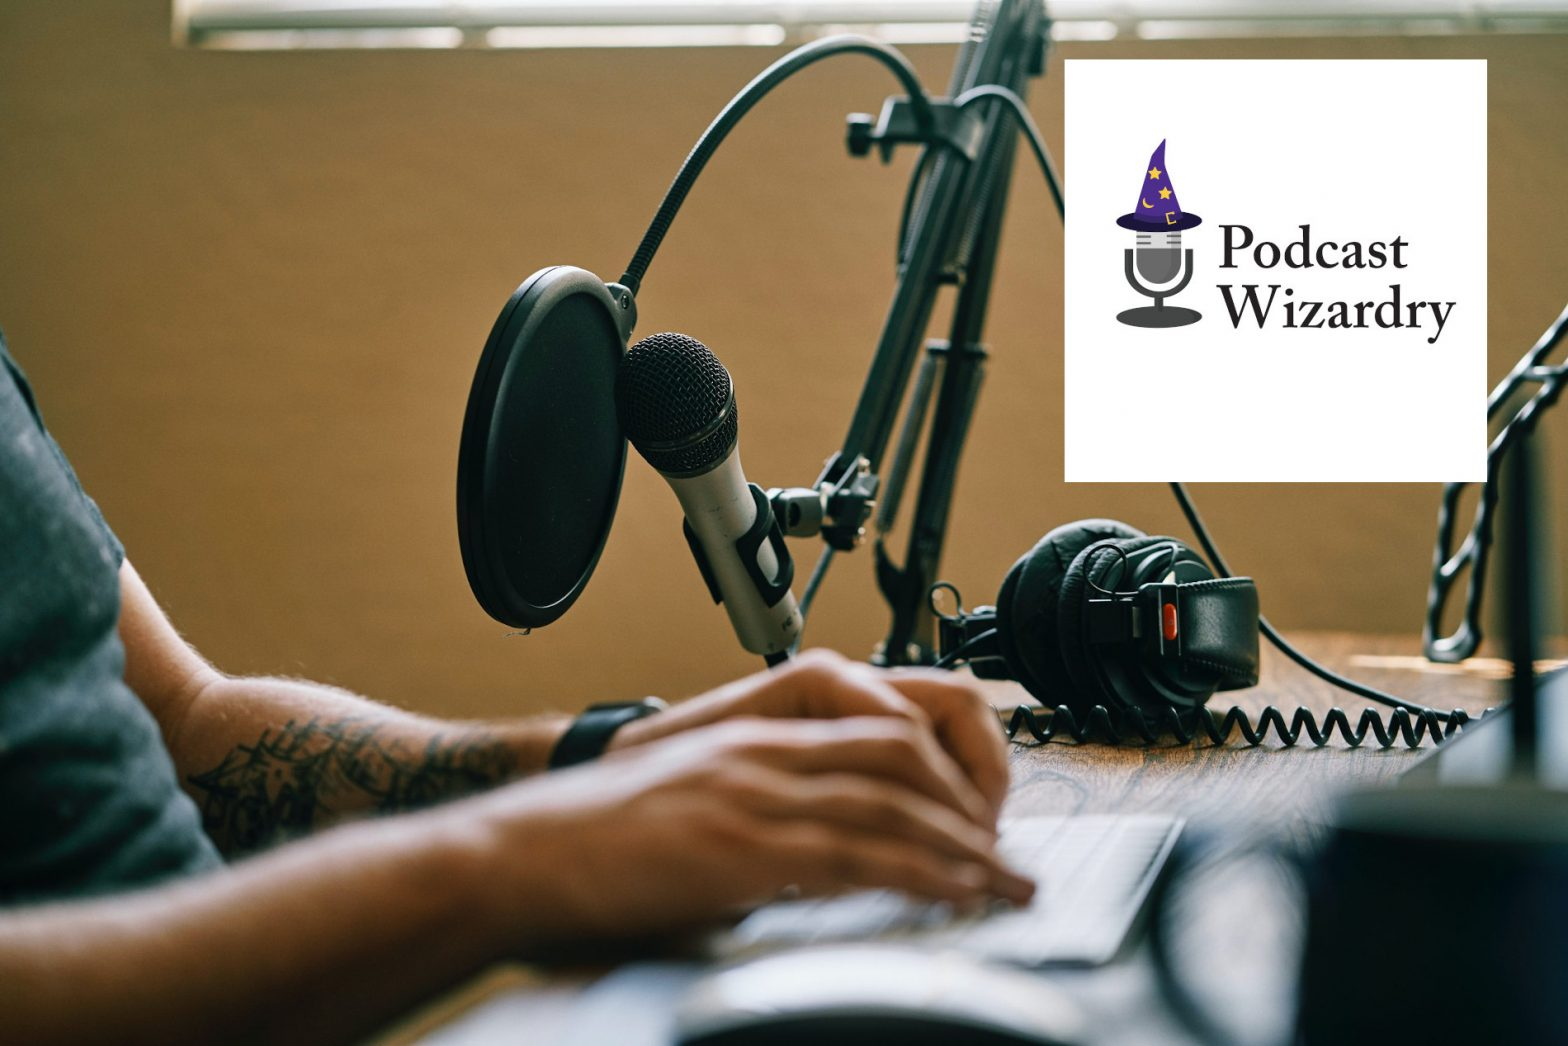 Podcast Production Services